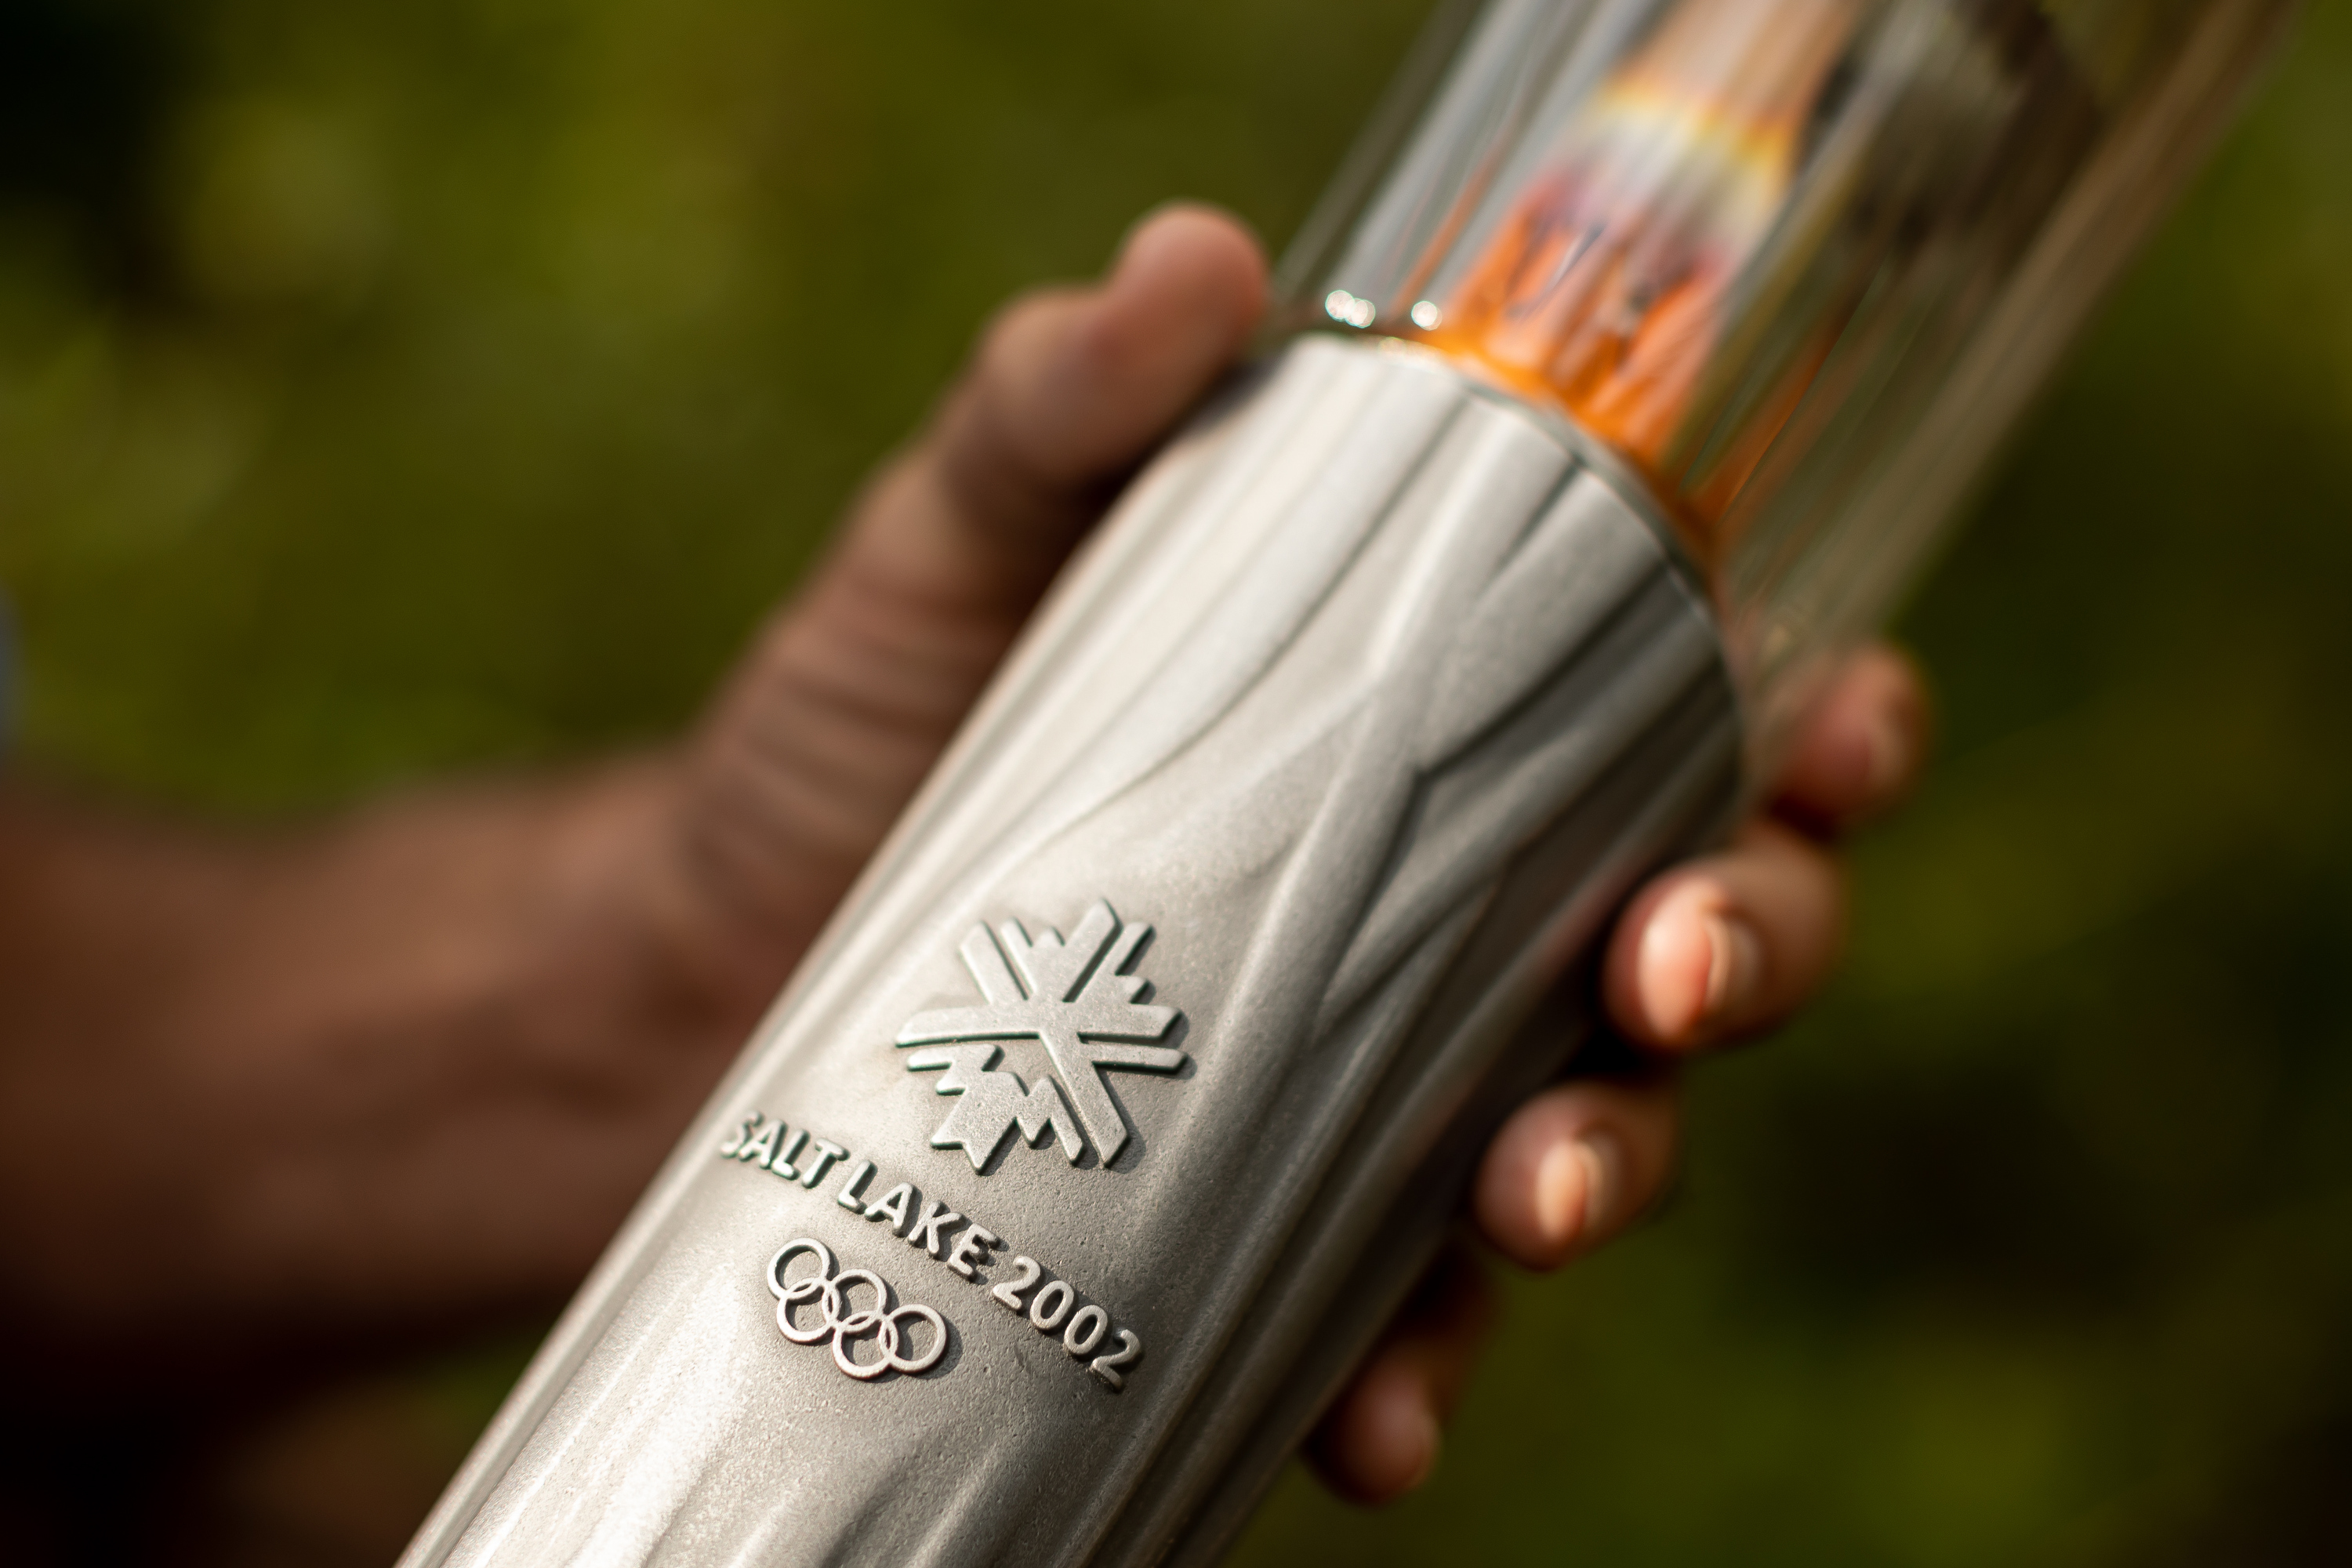 Fraser Bullock holds an Olympic torch from the 2002 Winter Games.